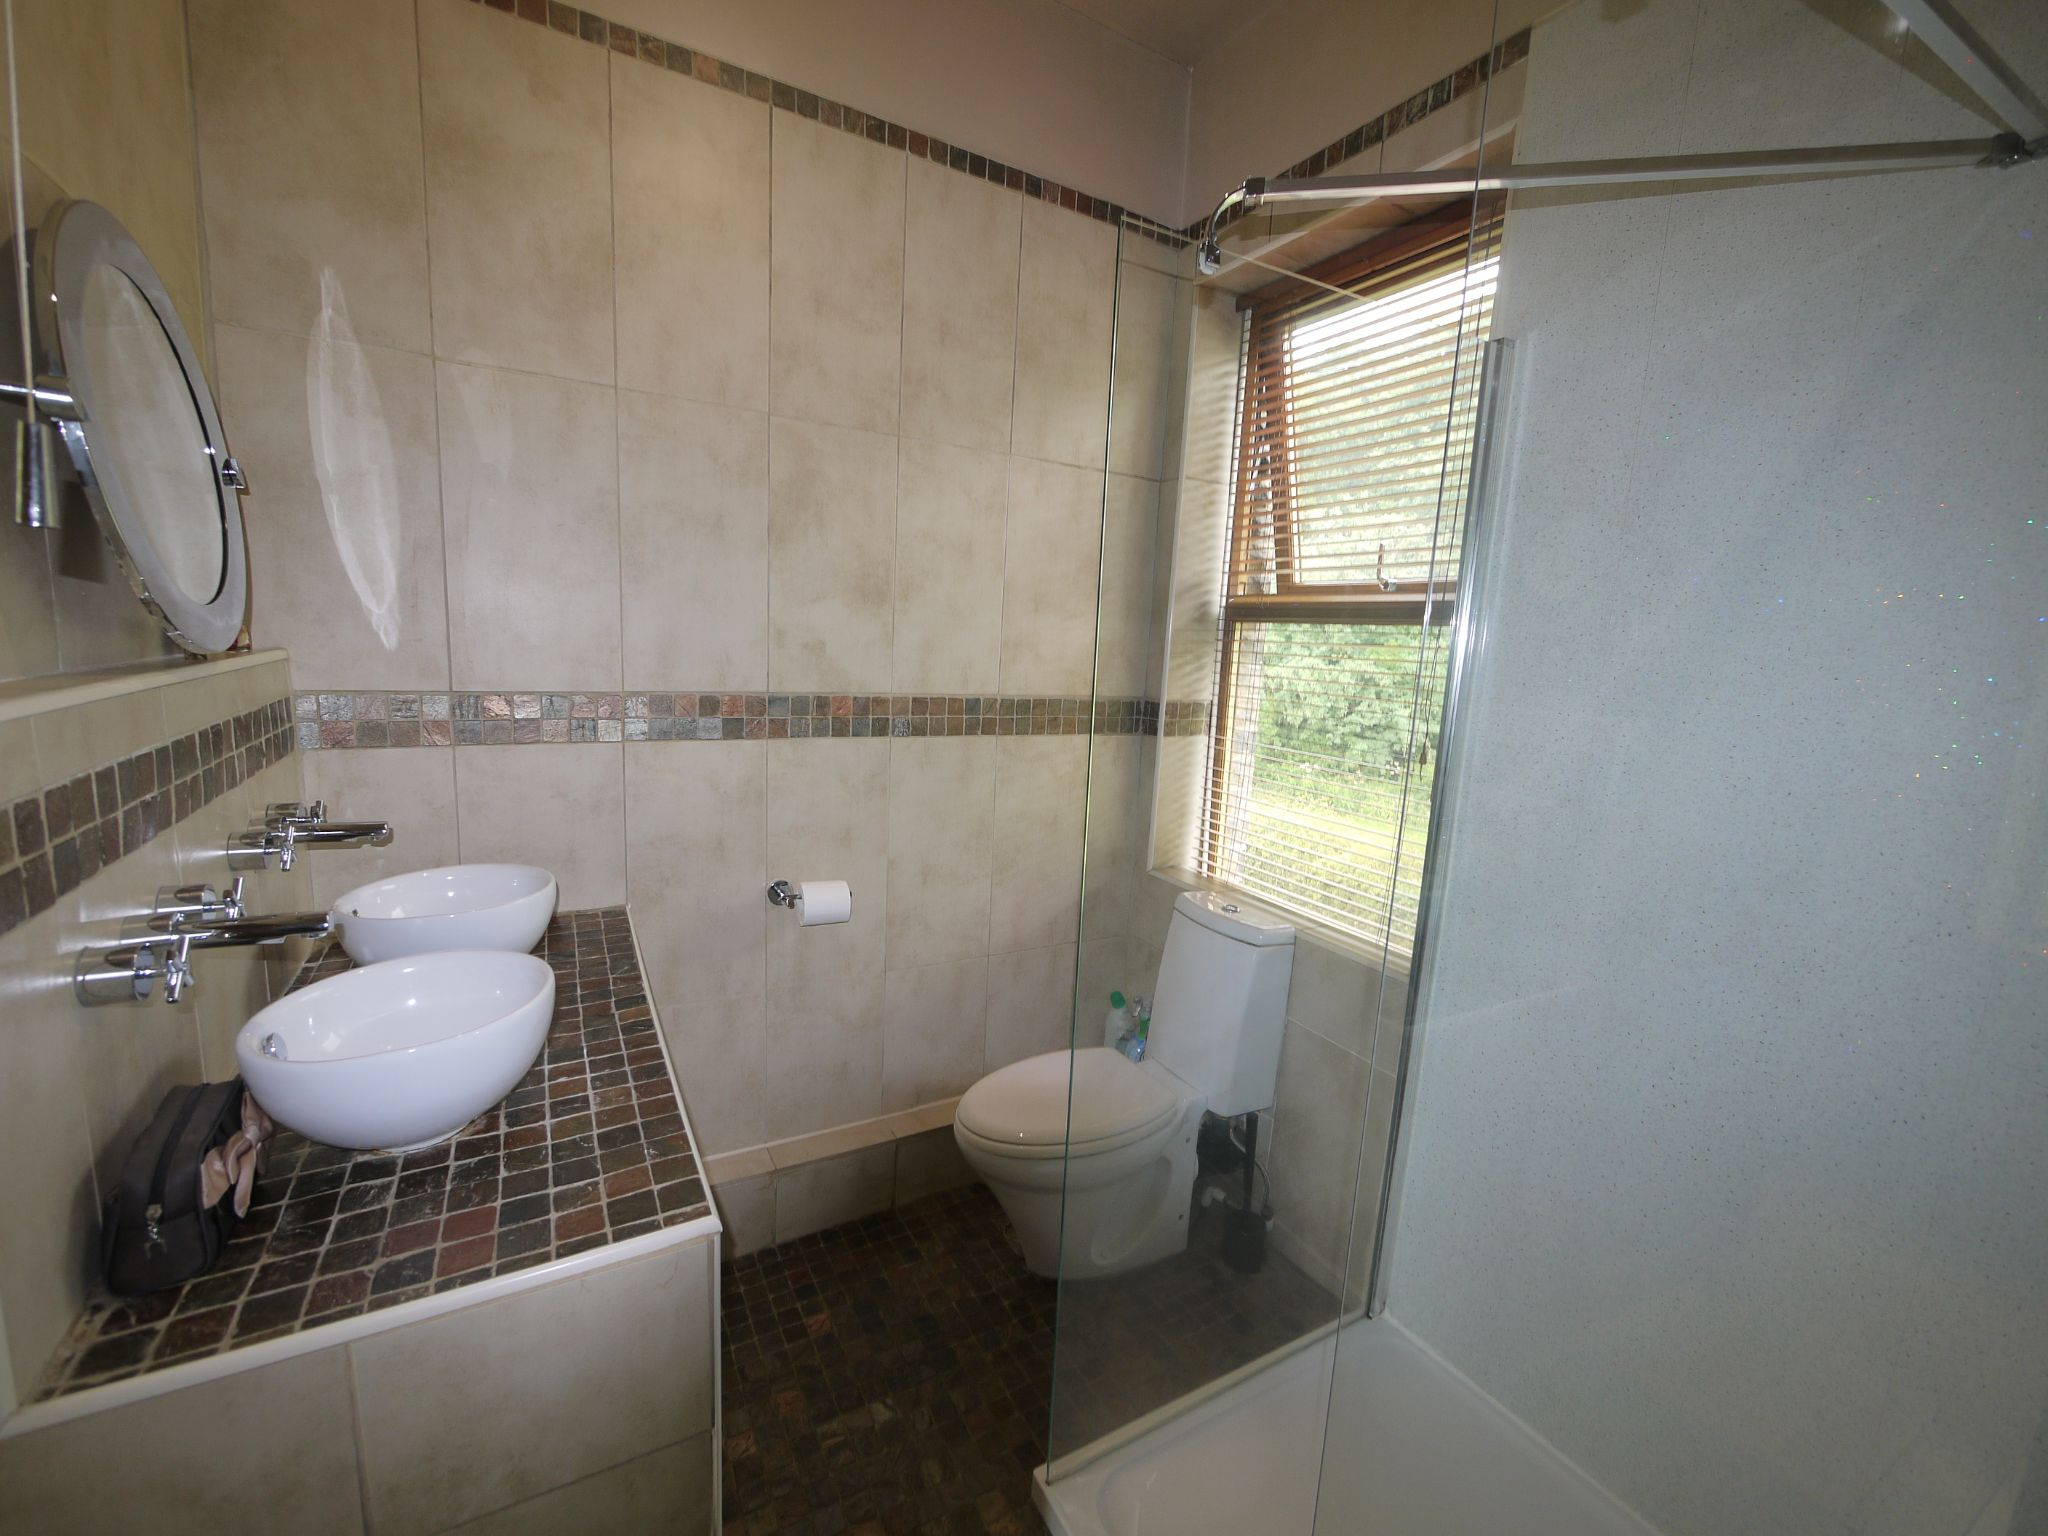 2 bedroom end terraced house SSTC in Brighouse - Shower Room 1.